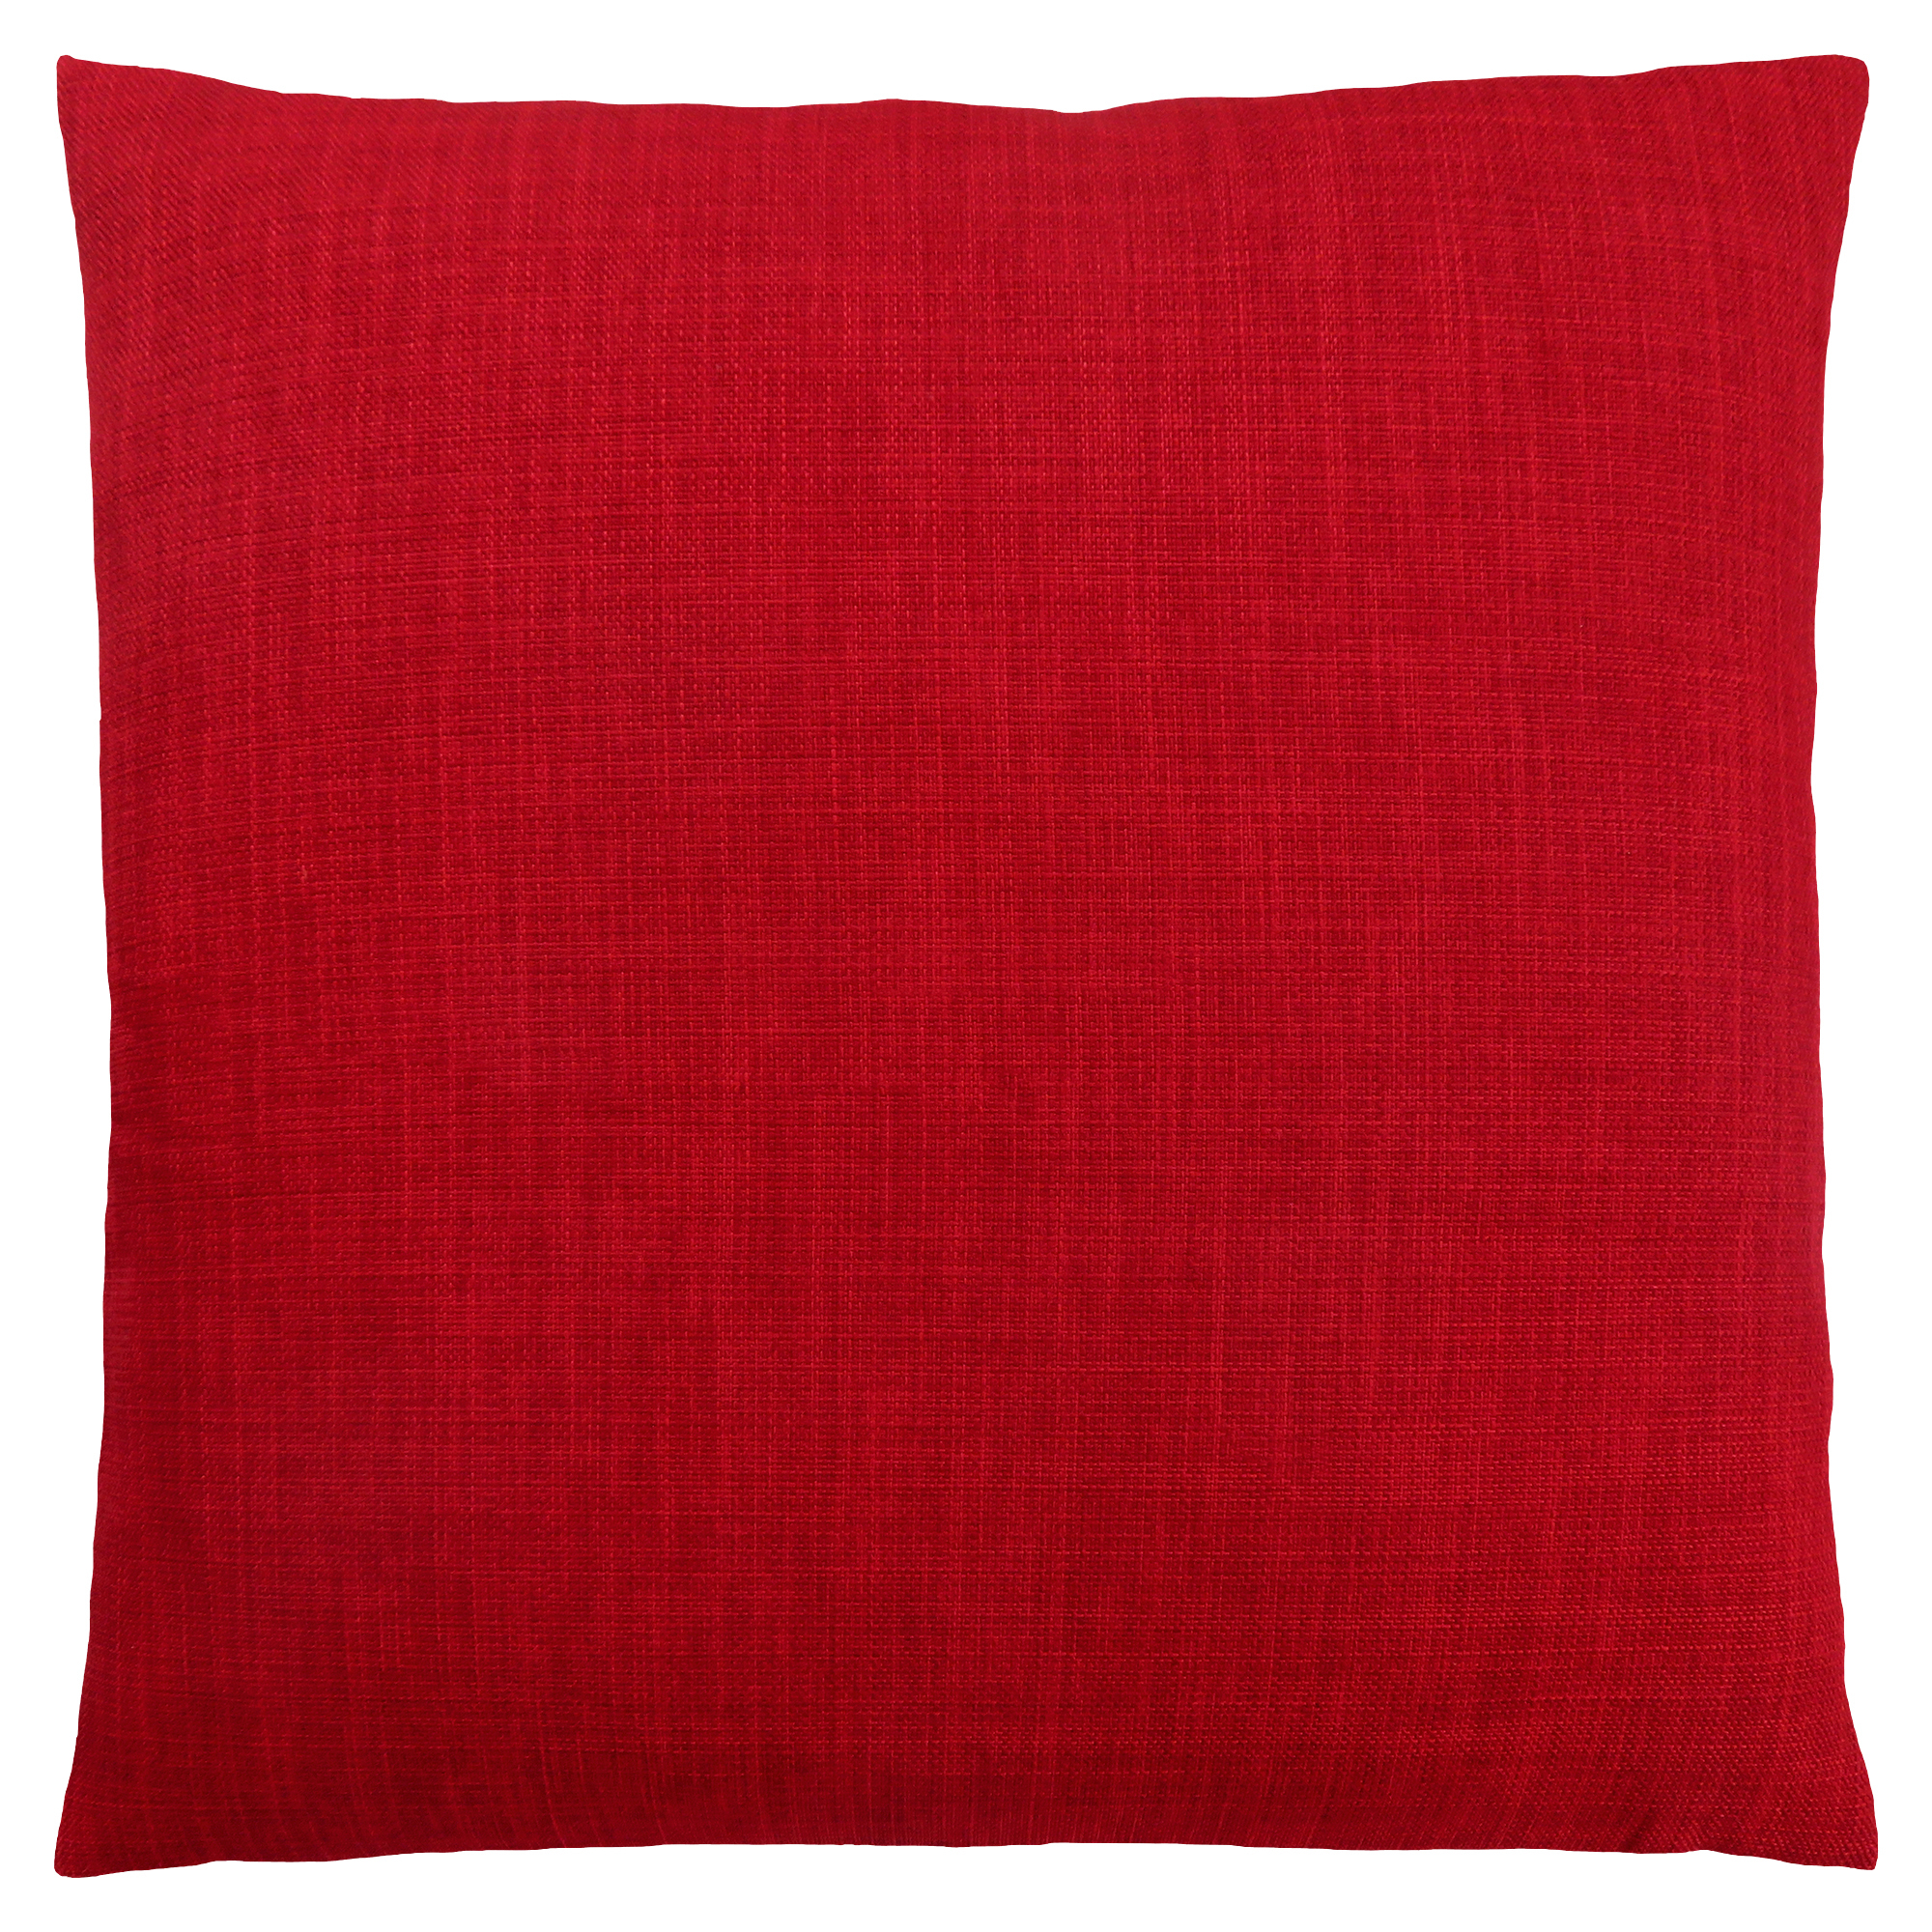 "PILLOW - 18""X 18"" / LINEN PATTERNED RED / 1PC"